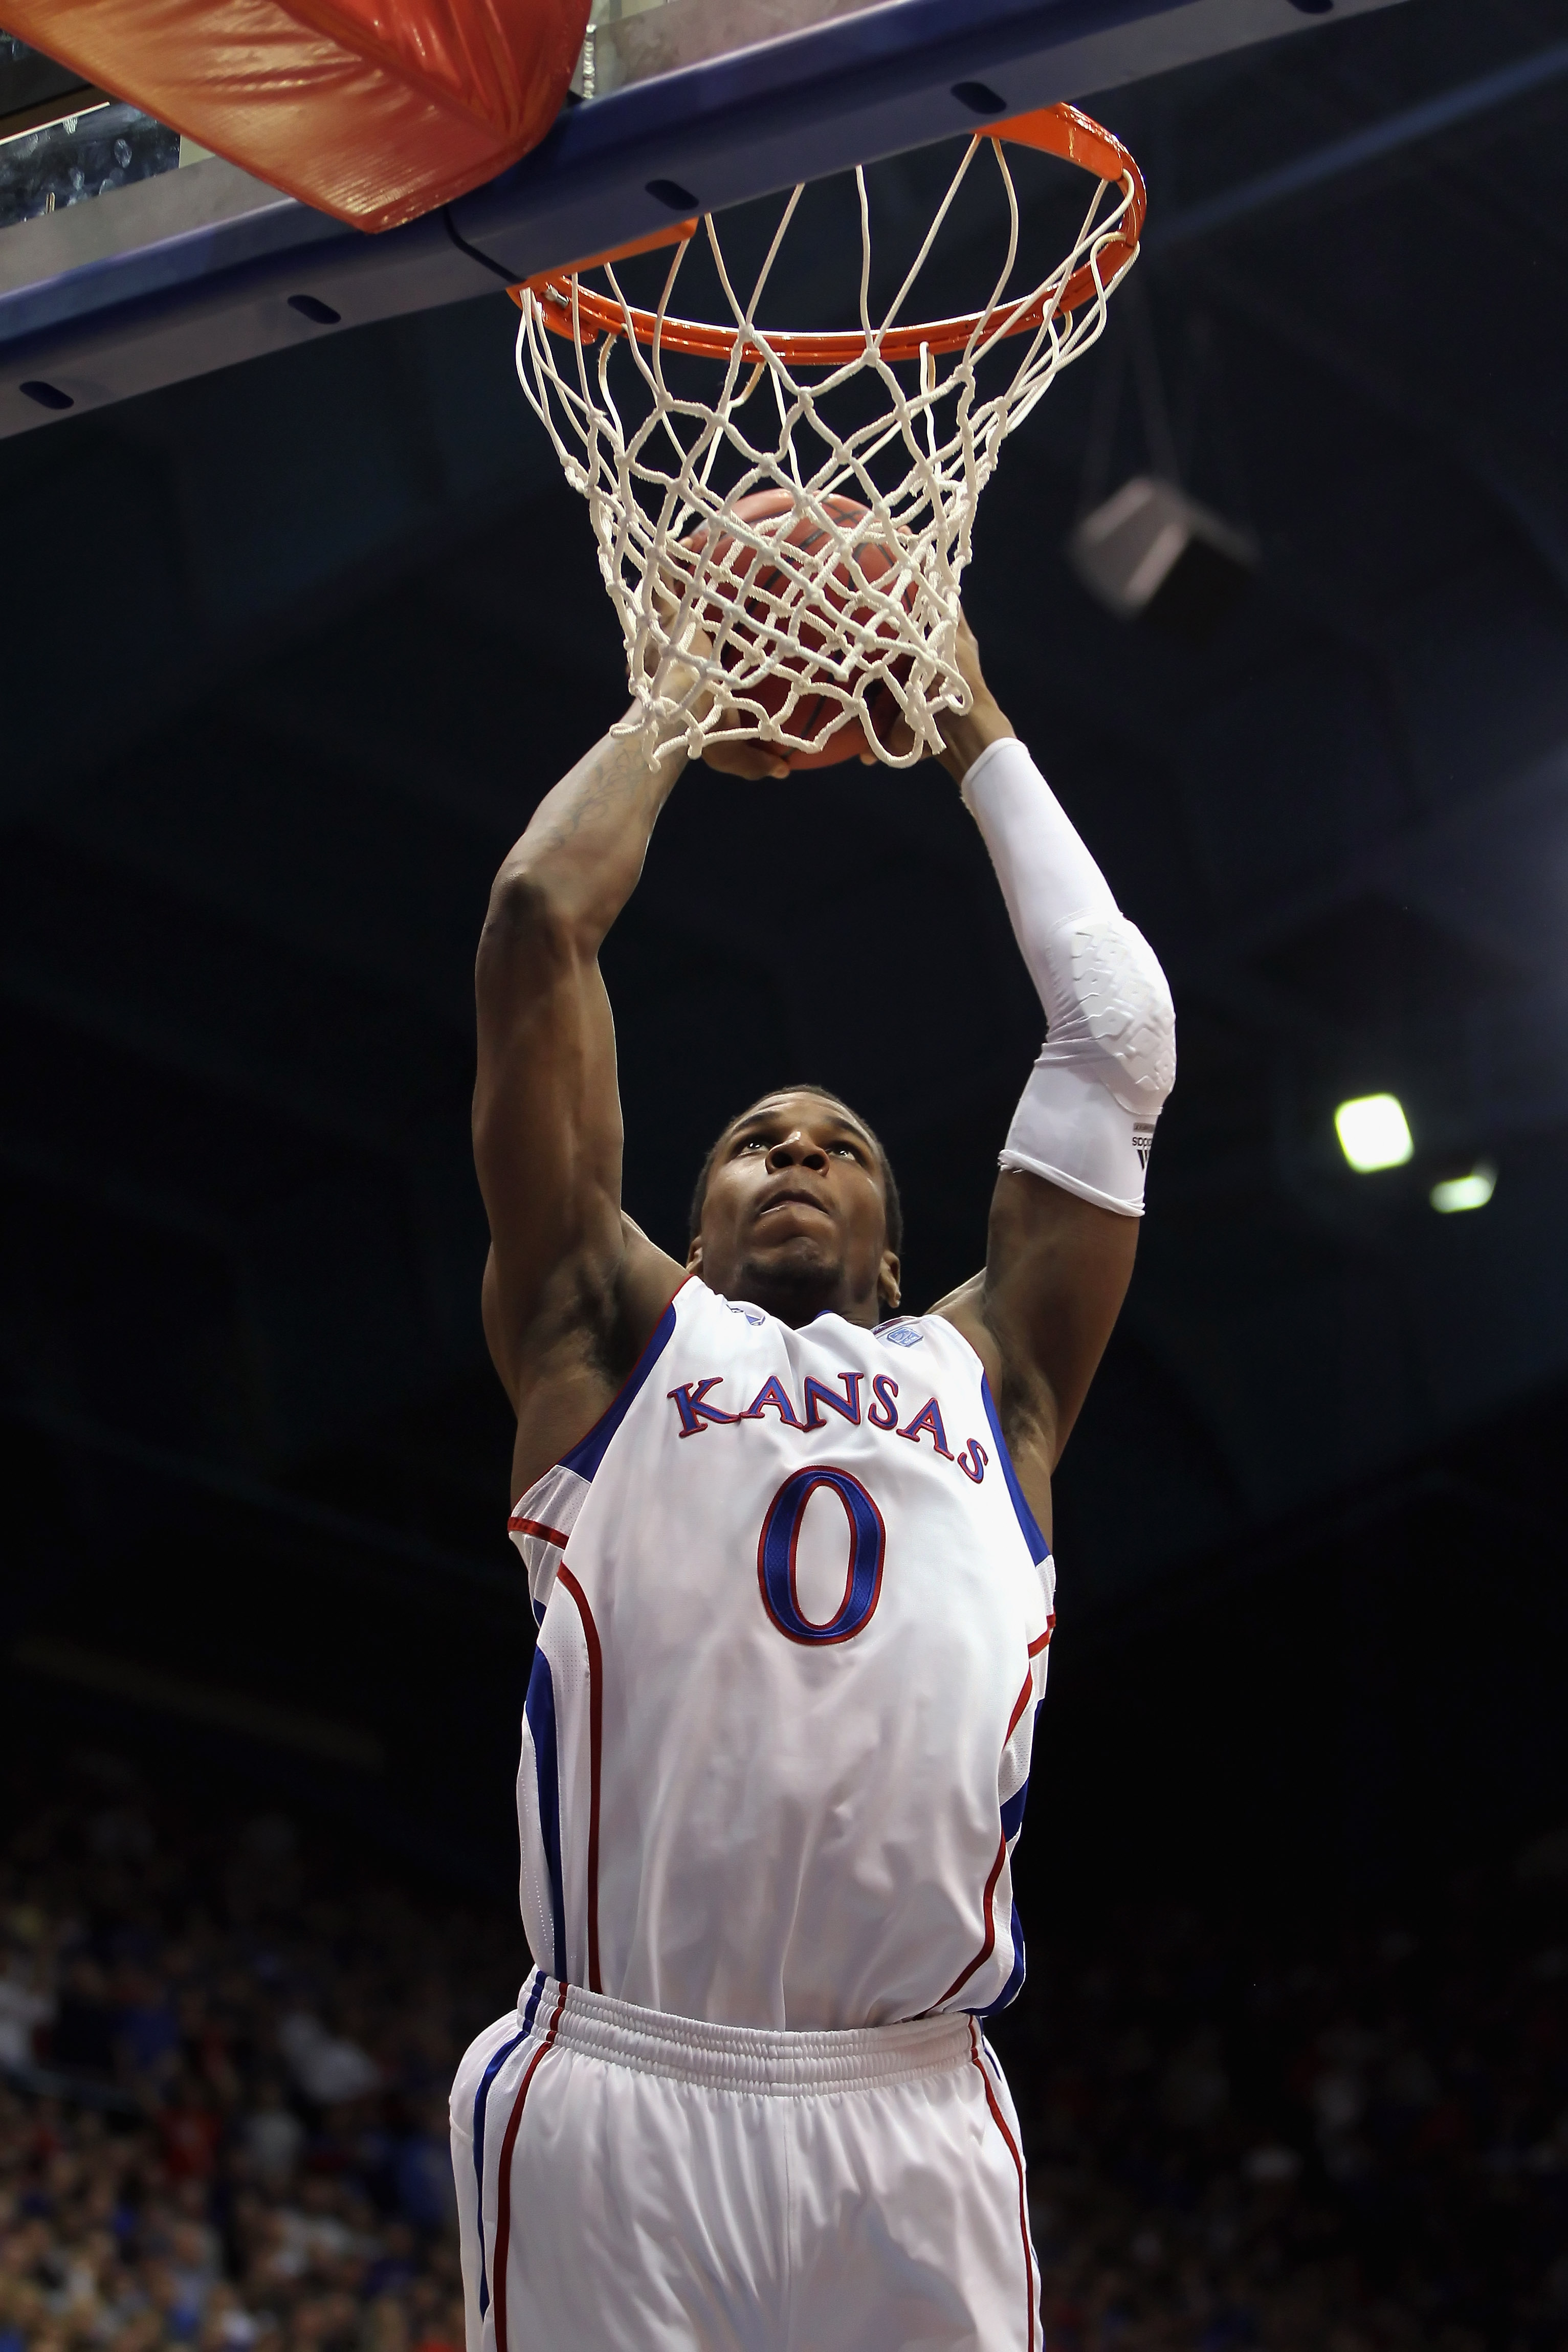 LAWRENCE, KS - DECEMBER 29:  Thomas Robinson #0 of the Kansas Jayhawks in action during the game against the University of Texas Arlington Mavericks on December 29, 2010 at Allen Fieldhouse in Lawrence, Kansas.  (Photo by Jamie Squire/Getty Images)